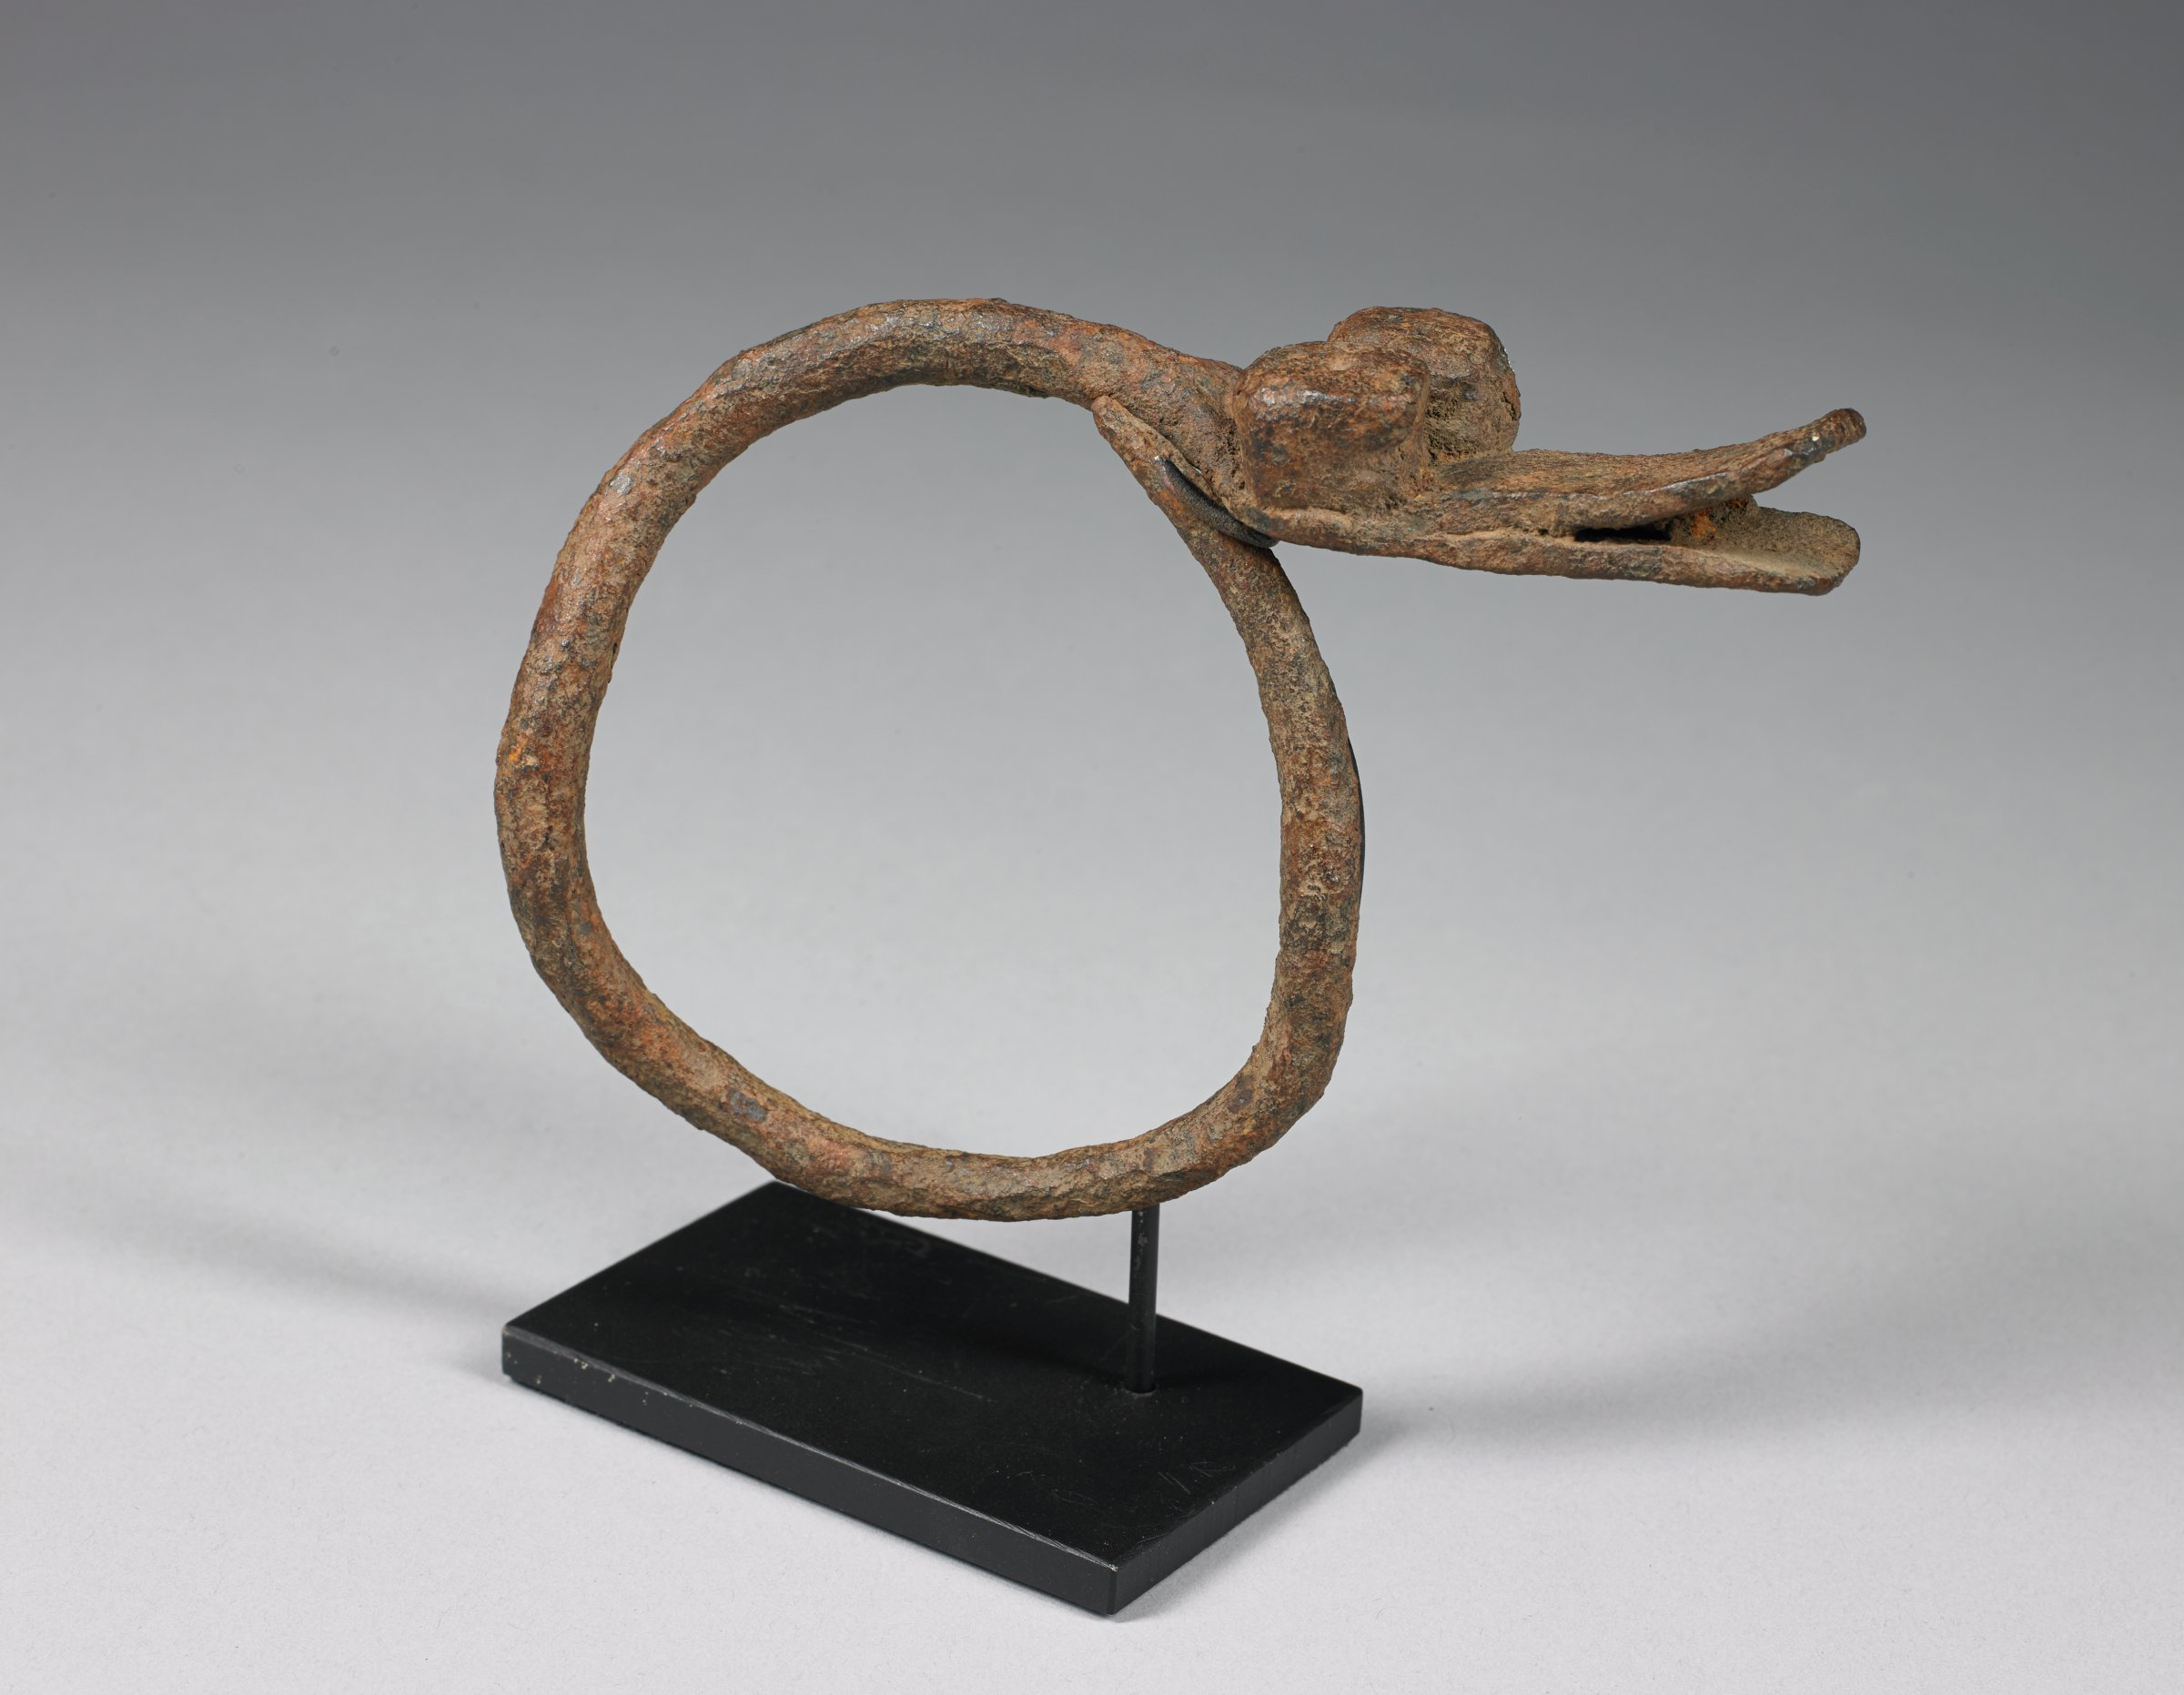 Circular bracelet forms body of serpent; serpent head, with bulbous raised eyes and open mouth, extends beyond circle